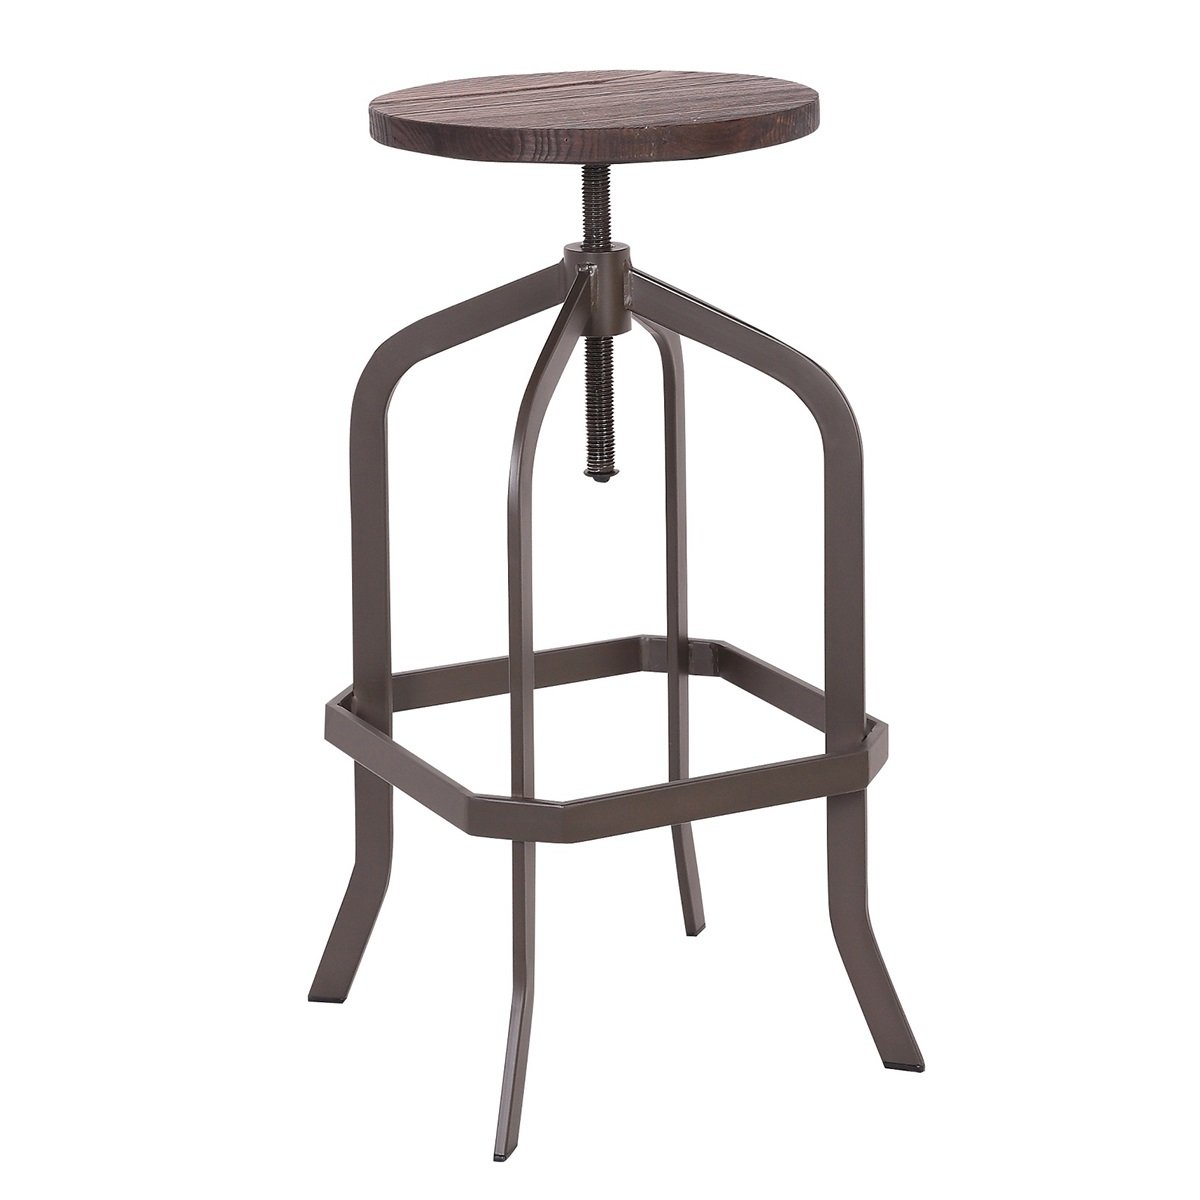 Bronte Living Swivel Adjustable Bar and Counter Metal Stool with Elm Wood Seat and Backless Industrial Style - 1 Unit Bronte Import Corp